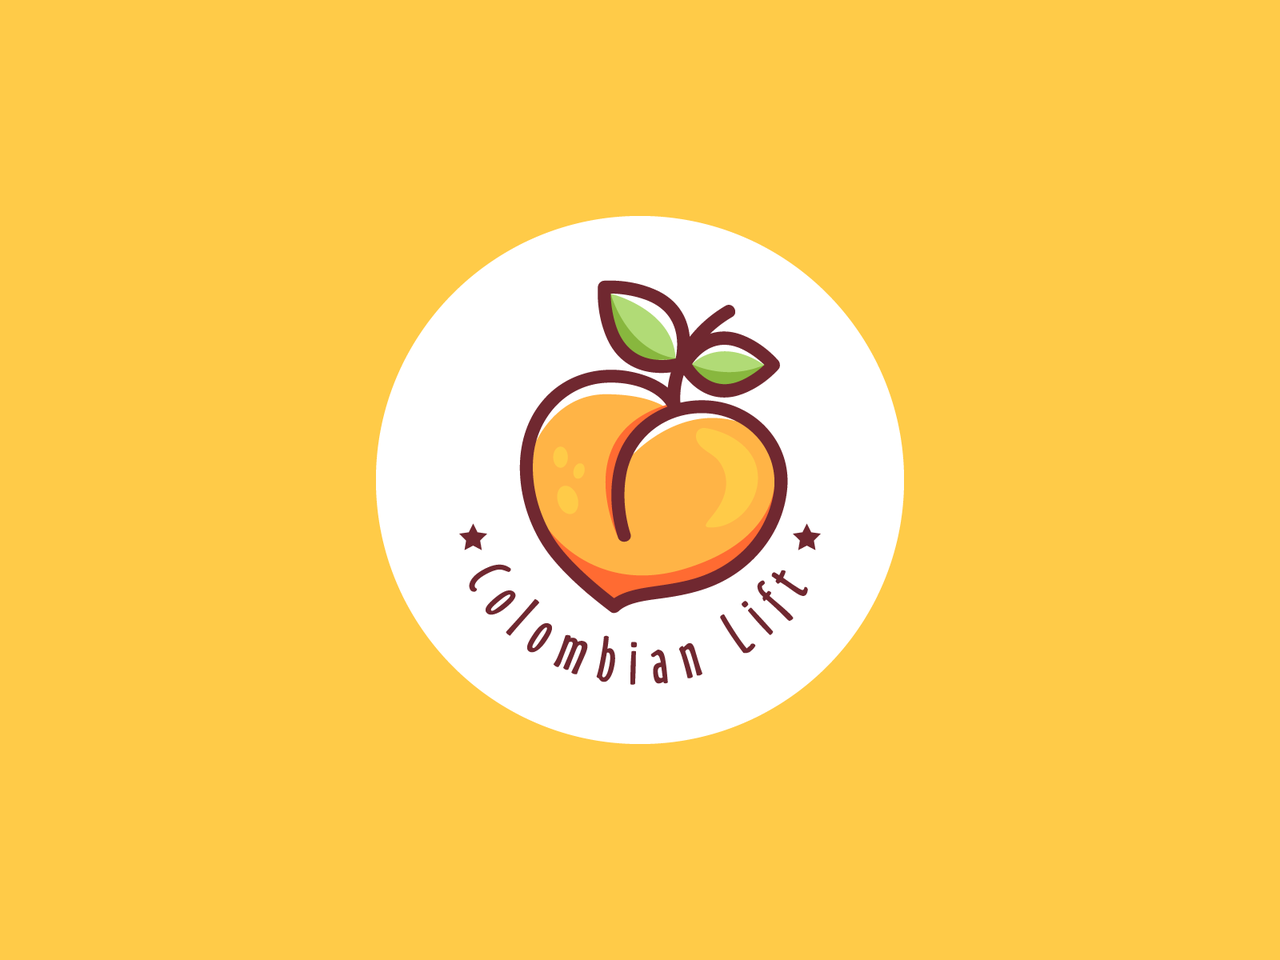 Peach logo design